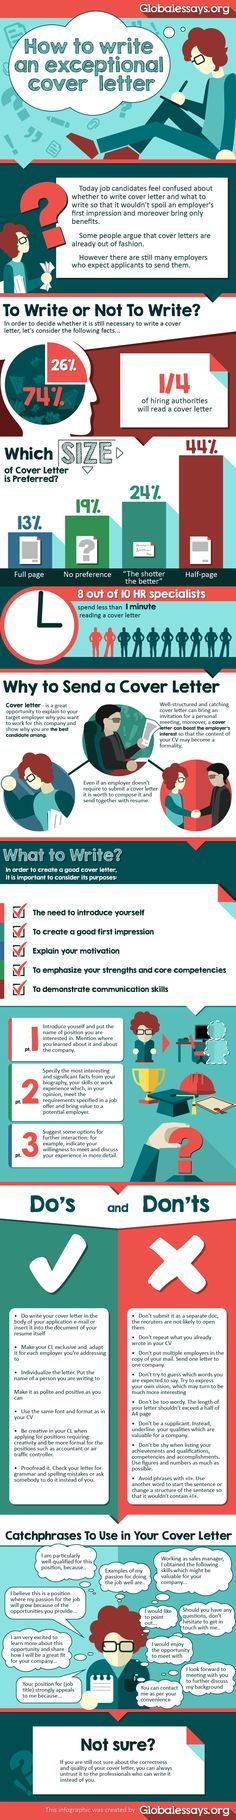 Professional cover letter services Write a cover letter that gets - professional resume and cover letter services